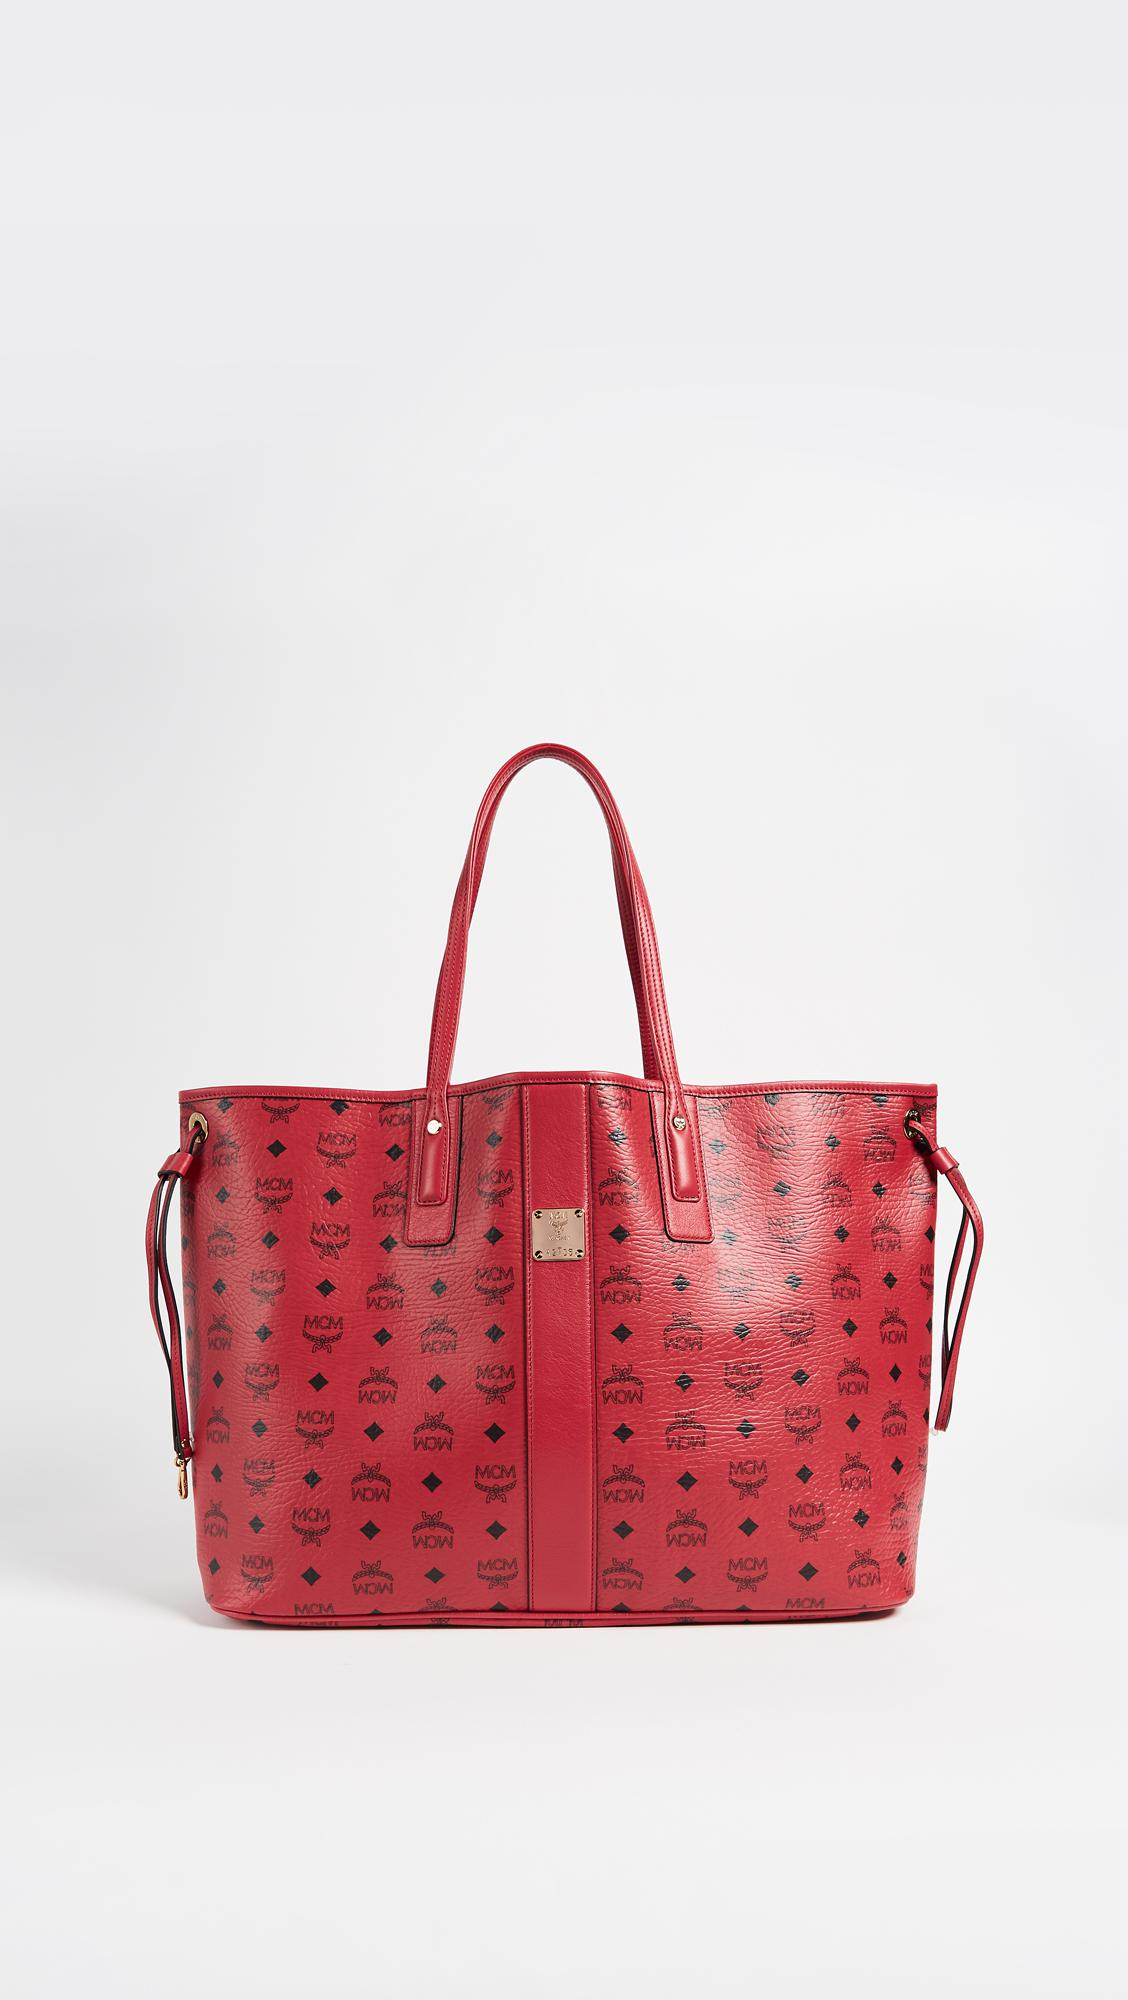 lyst mcm large liz shopper tote in red. Black Bedroom Furniture Sets. Home Design Ideas